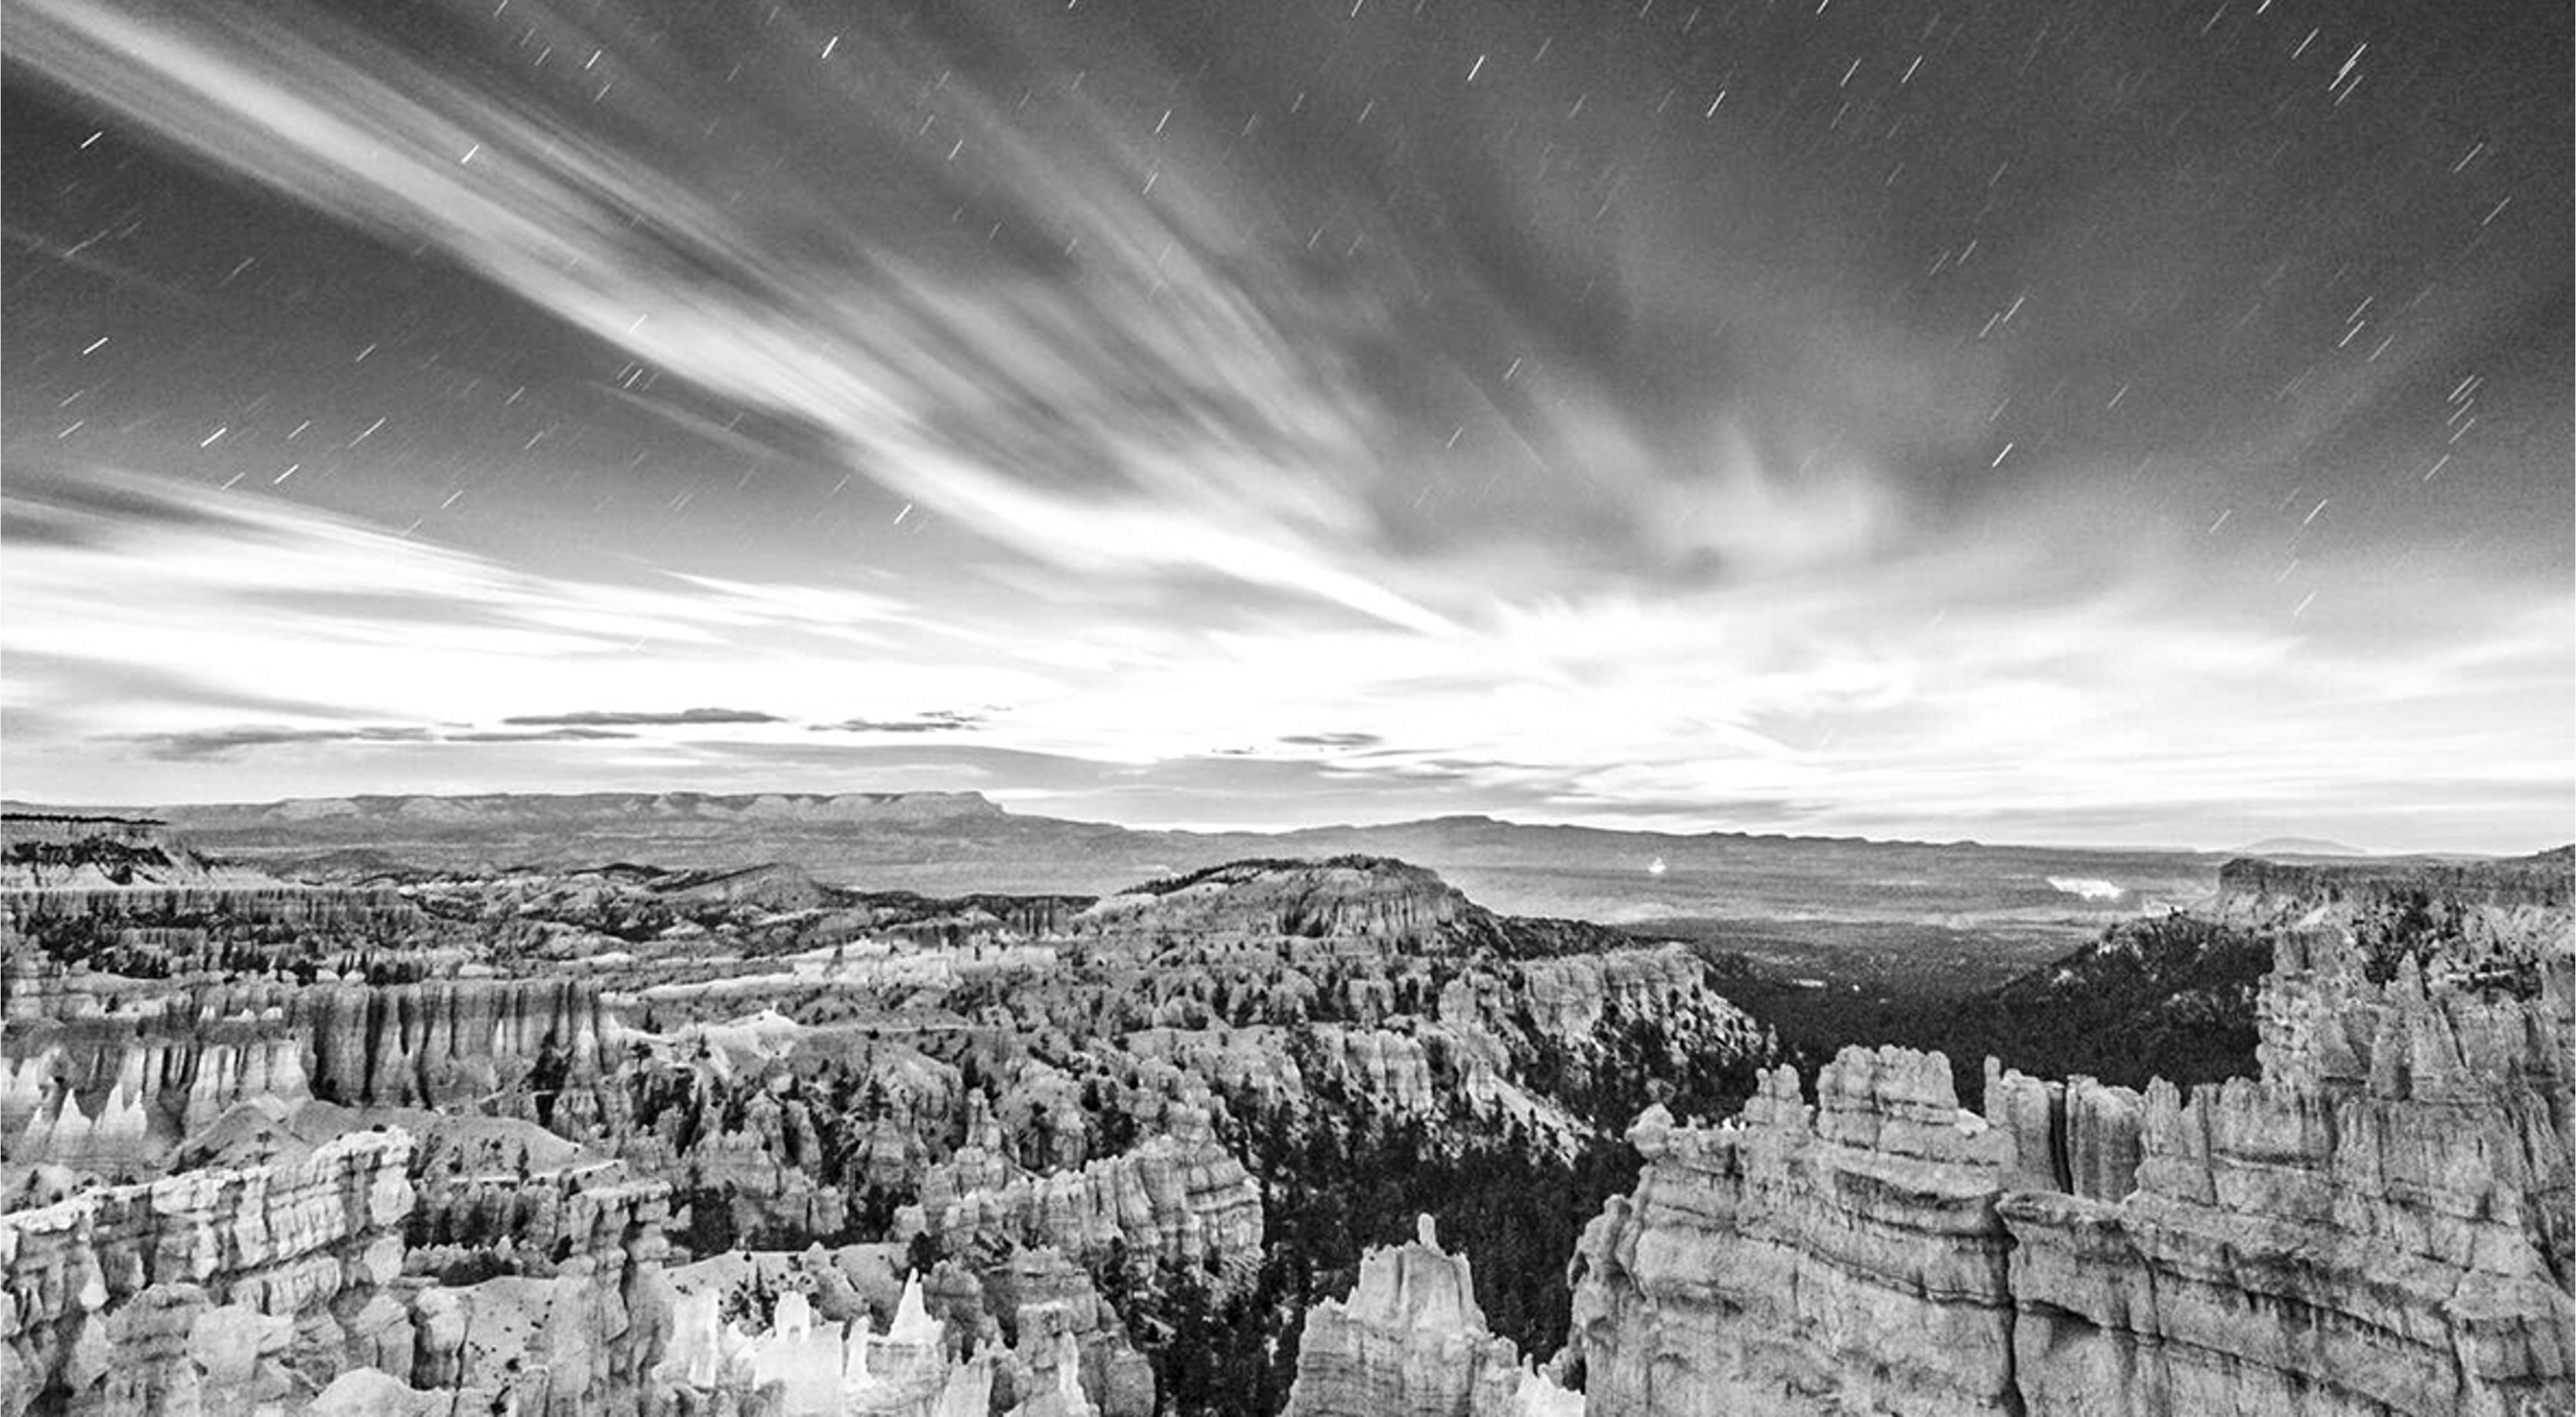 Black and white image of the moonrise over Bryce Canyon National Park in Utah.